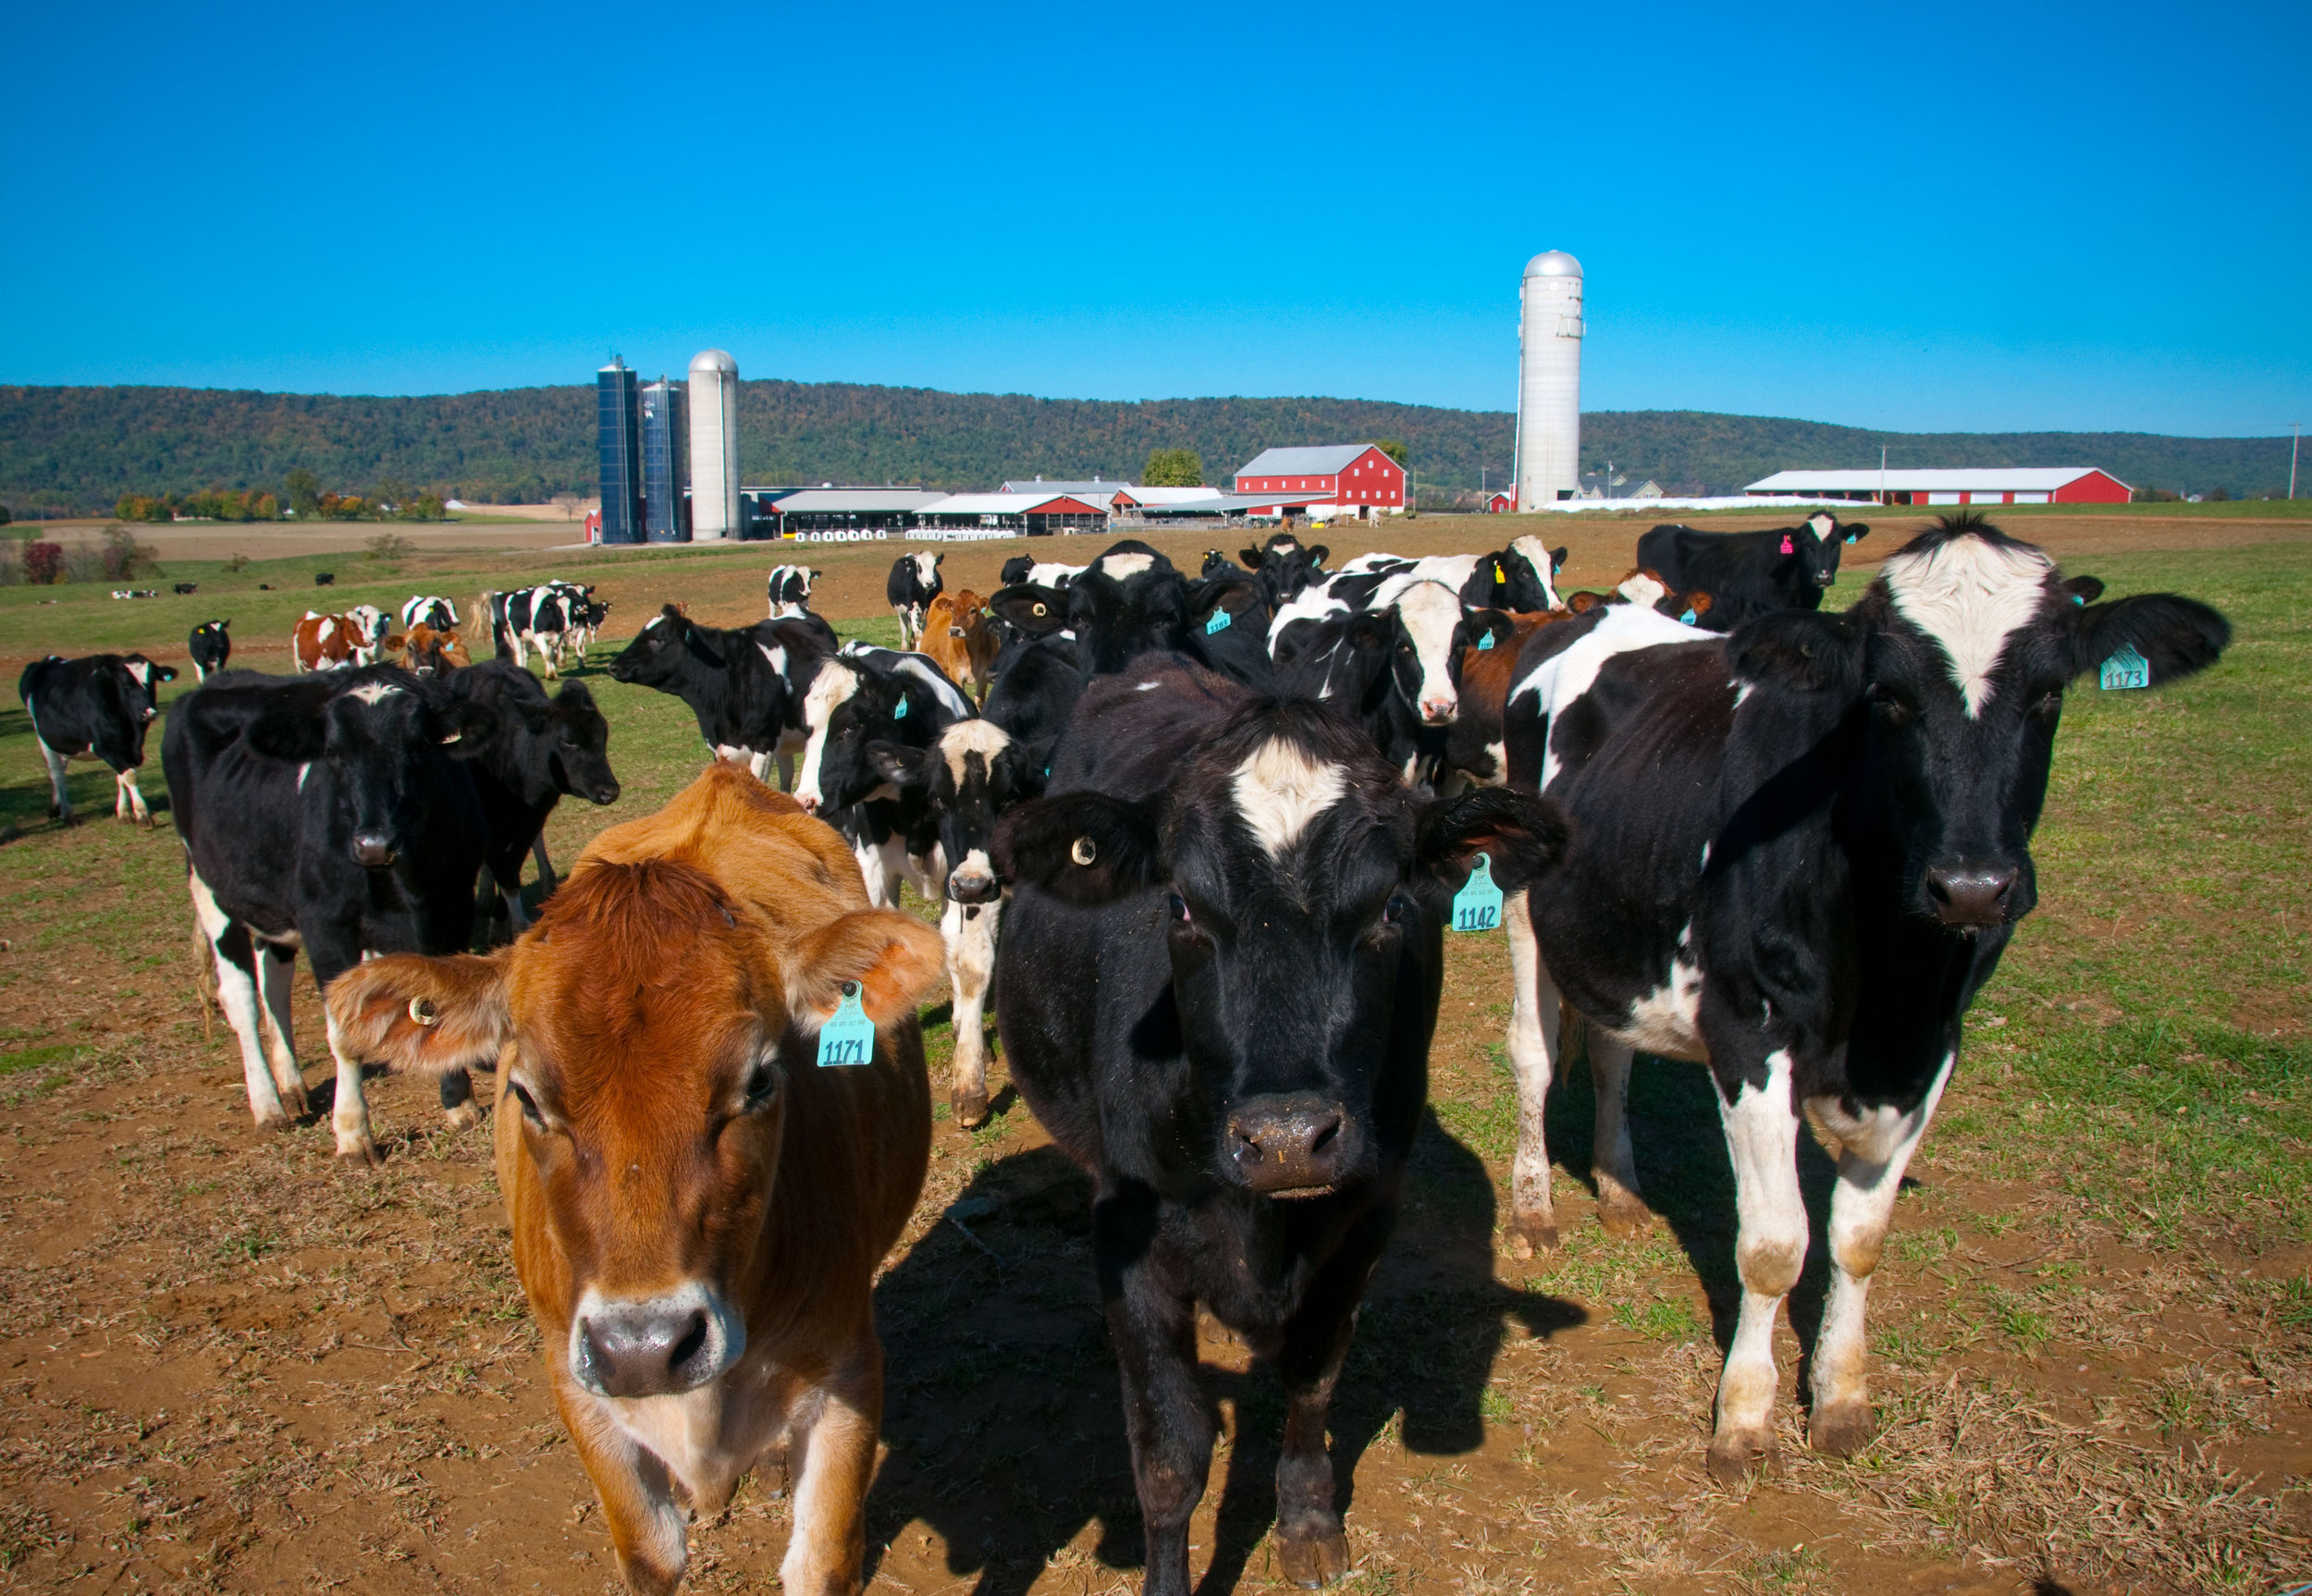 Photo of cows on a farm. Image by Edwin Remsberg.